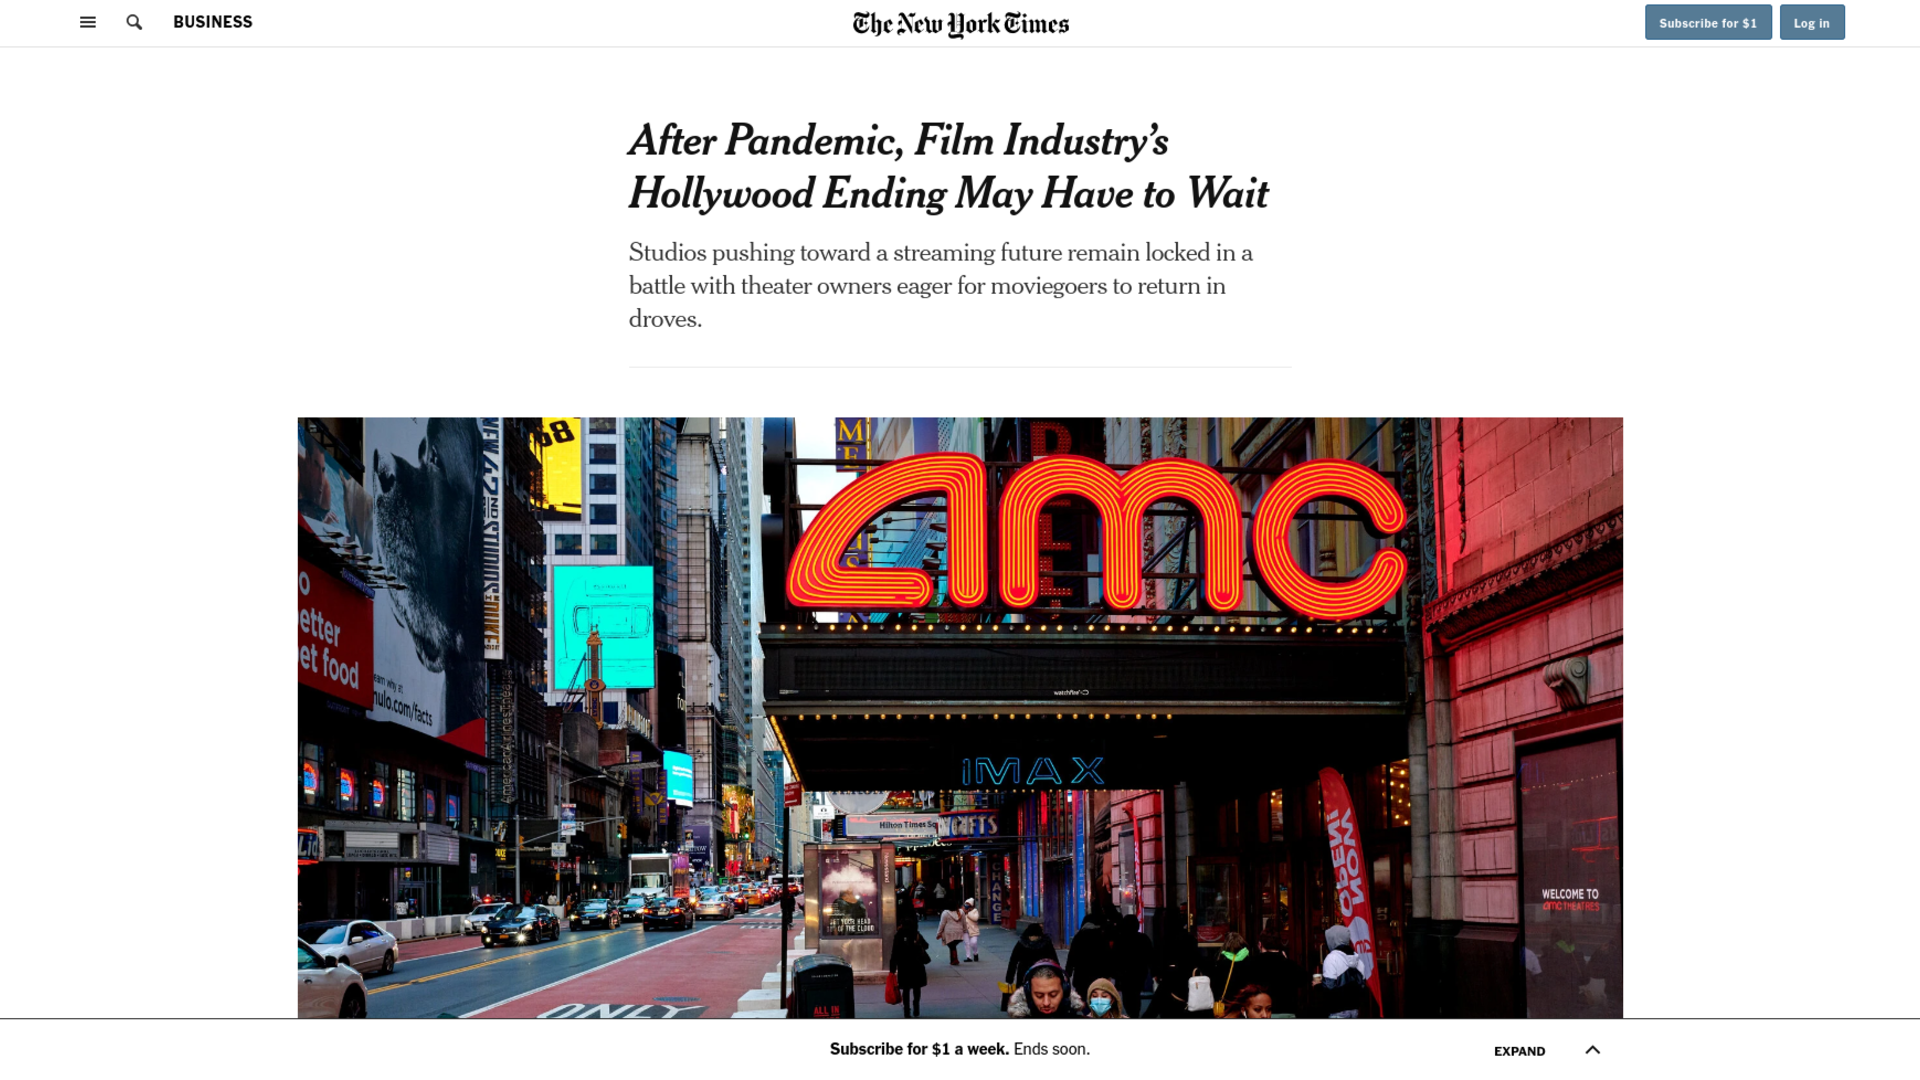 Fairness Rocks News After Pandemic, Film Industry's Hollywood Ending May Have to Wait